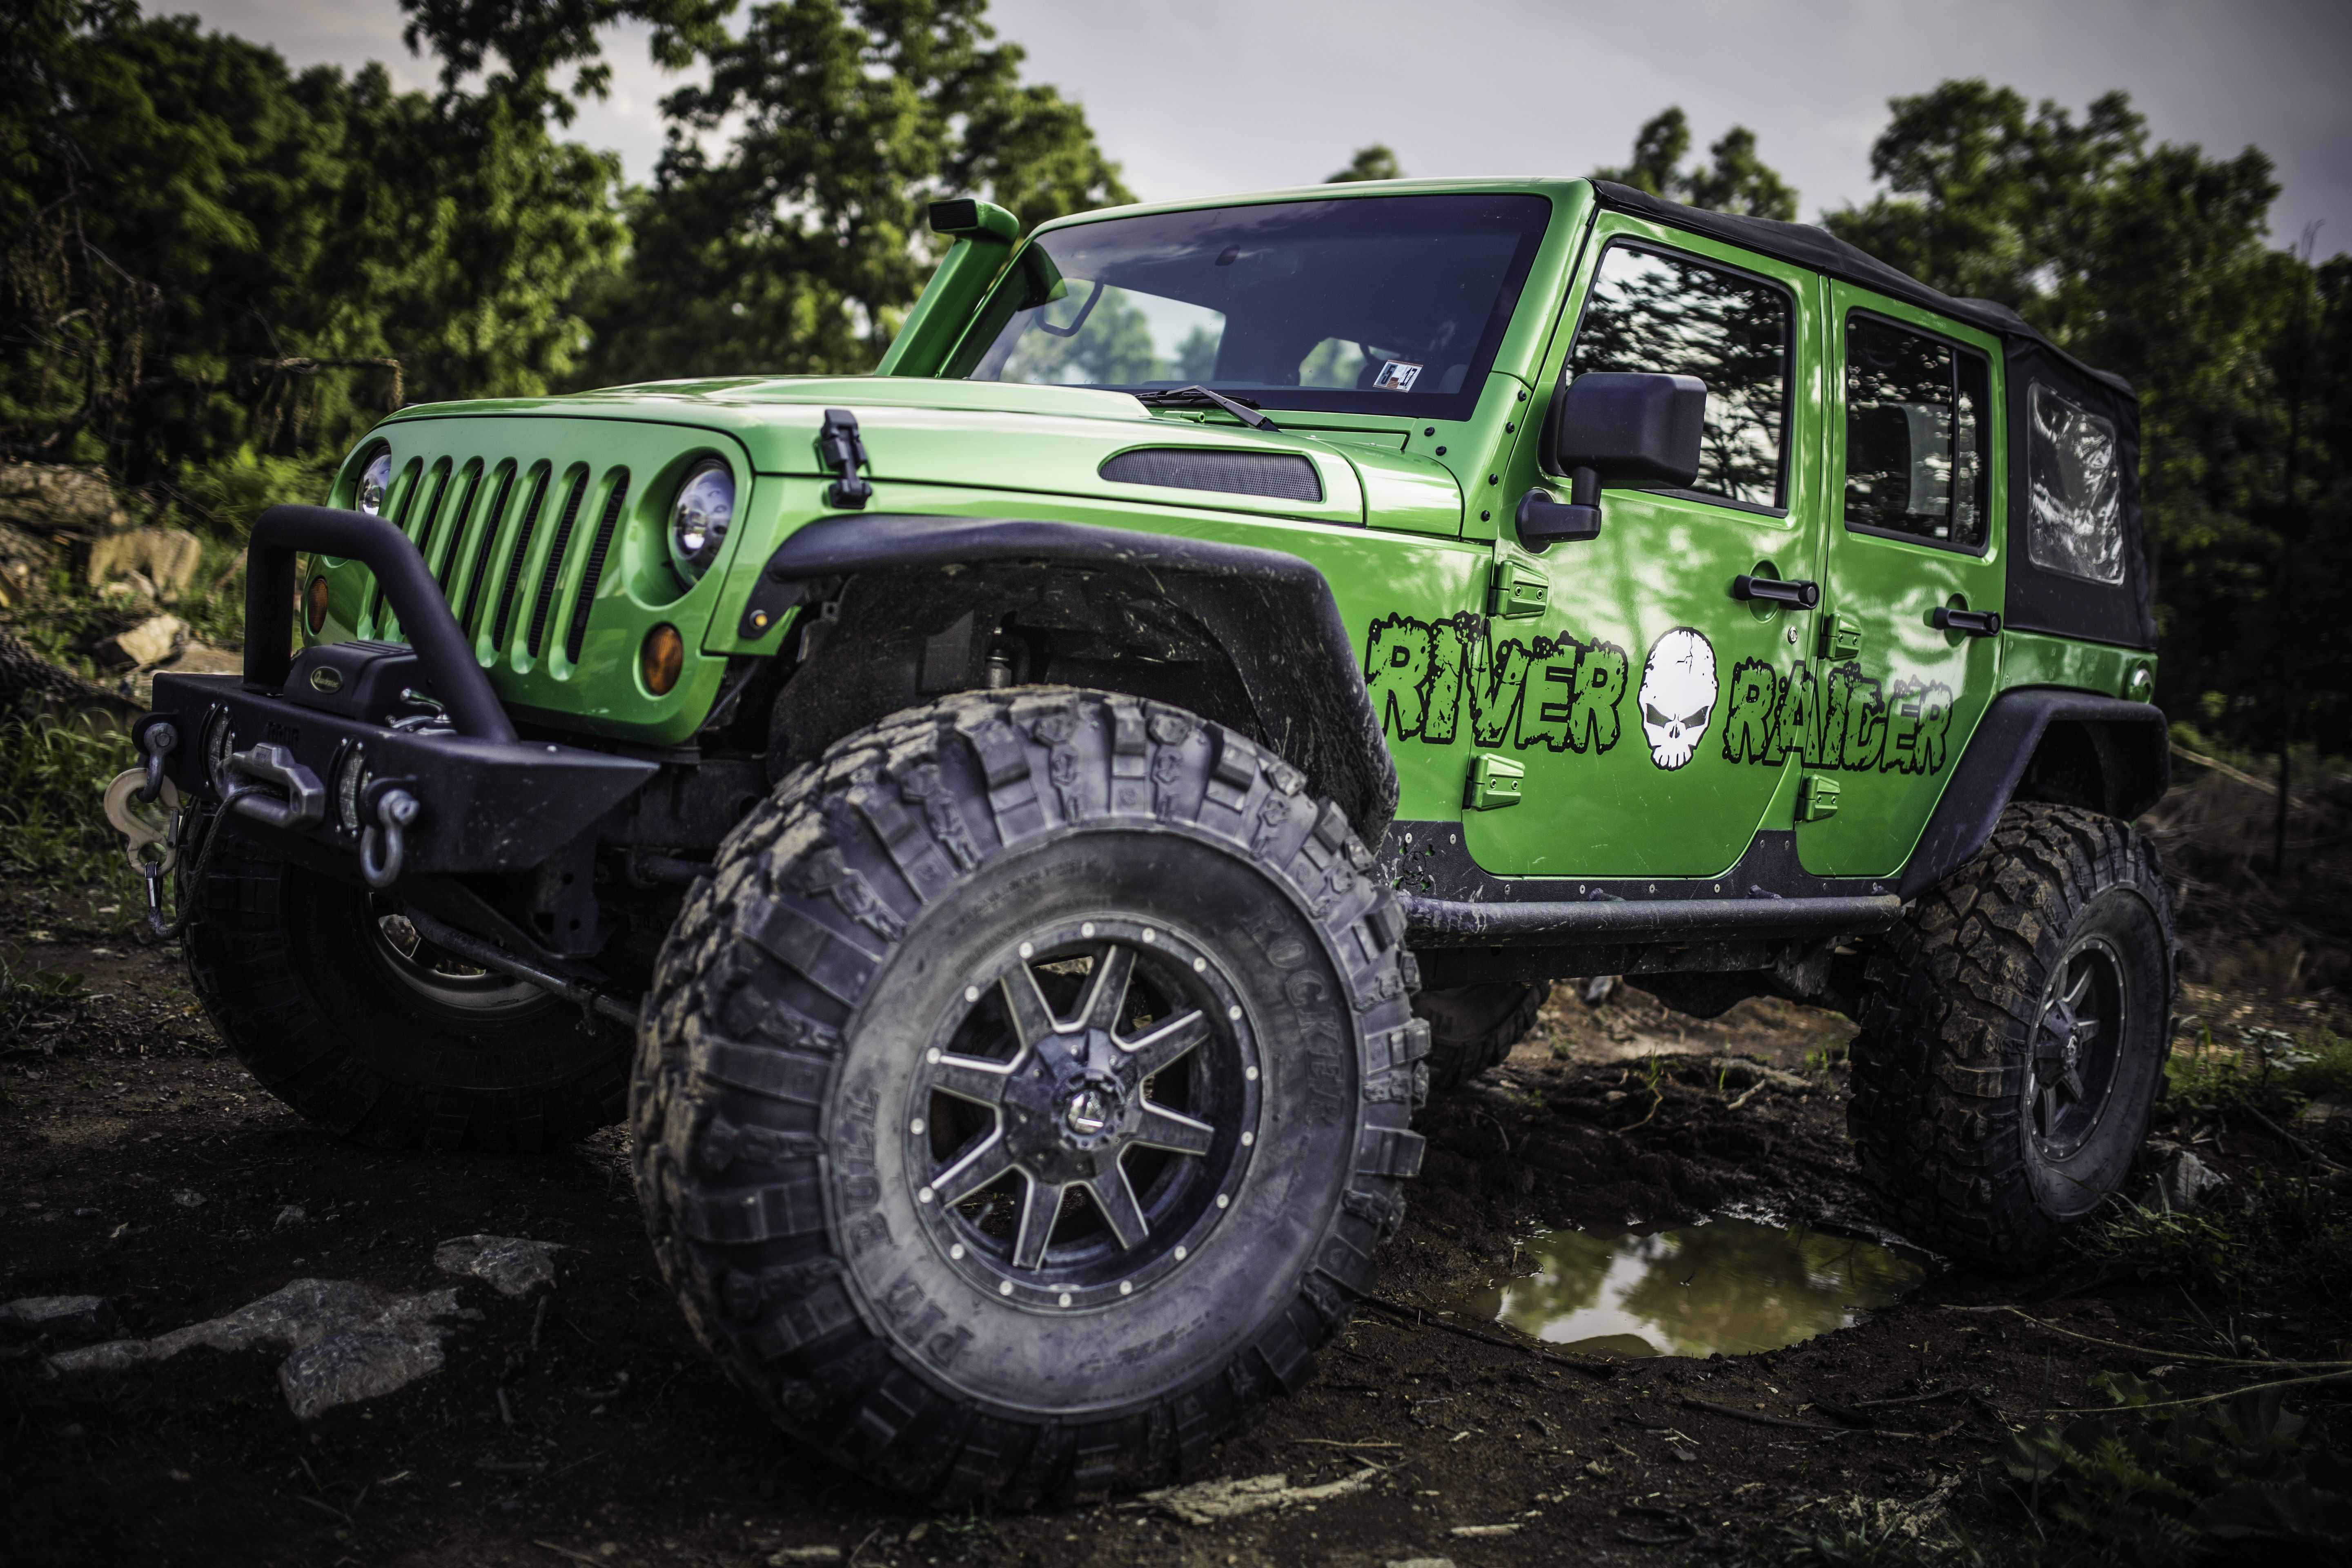 A Jeep Wrangler Outfitted With River Raider Parts Jeep Wrangler